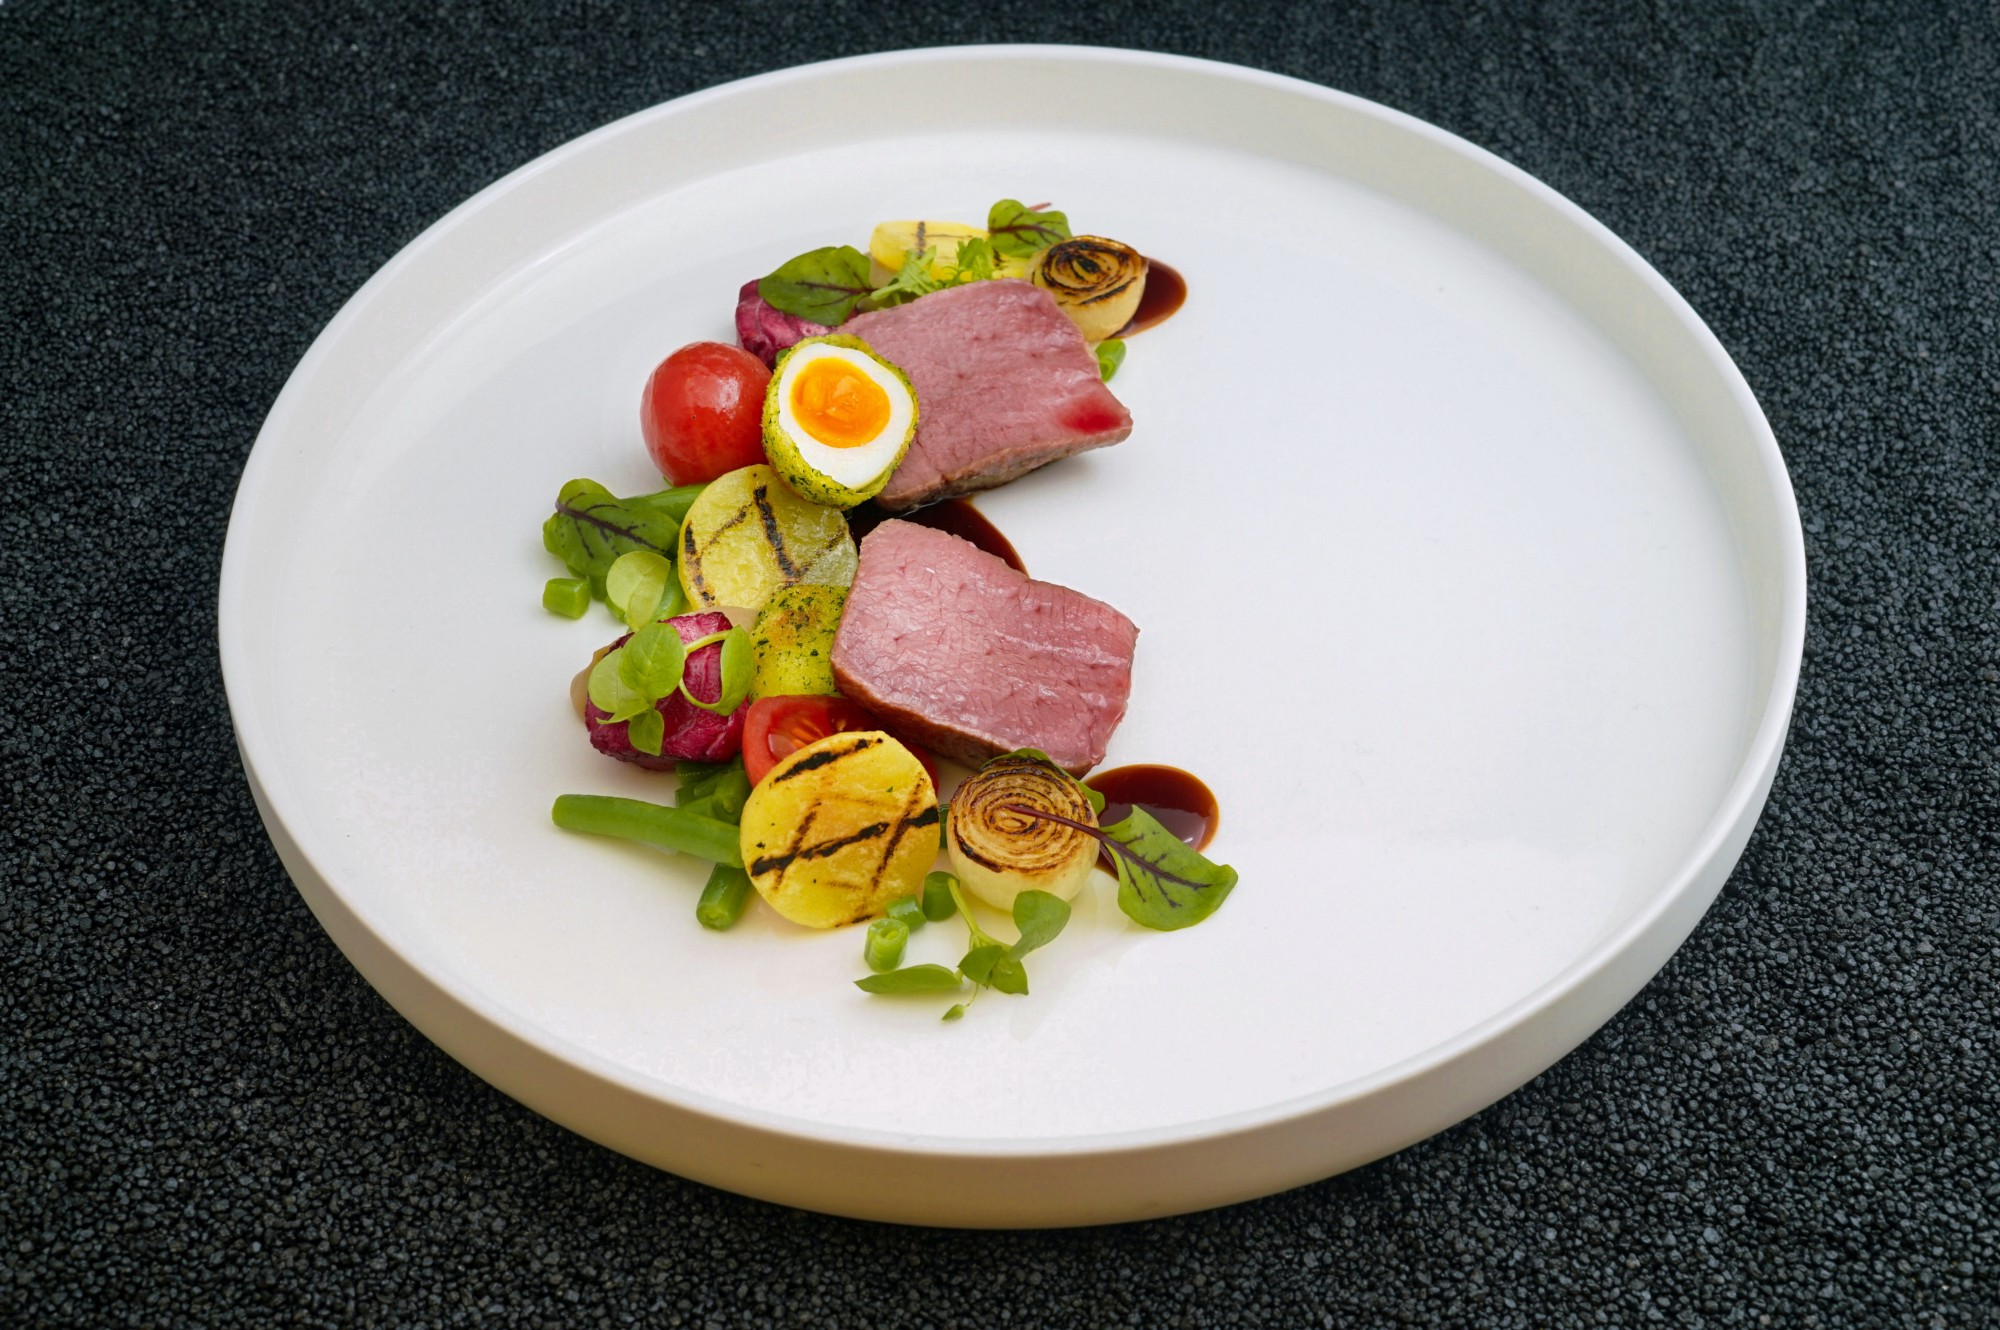 Picture of a Michelin-star cuisine on a plate.